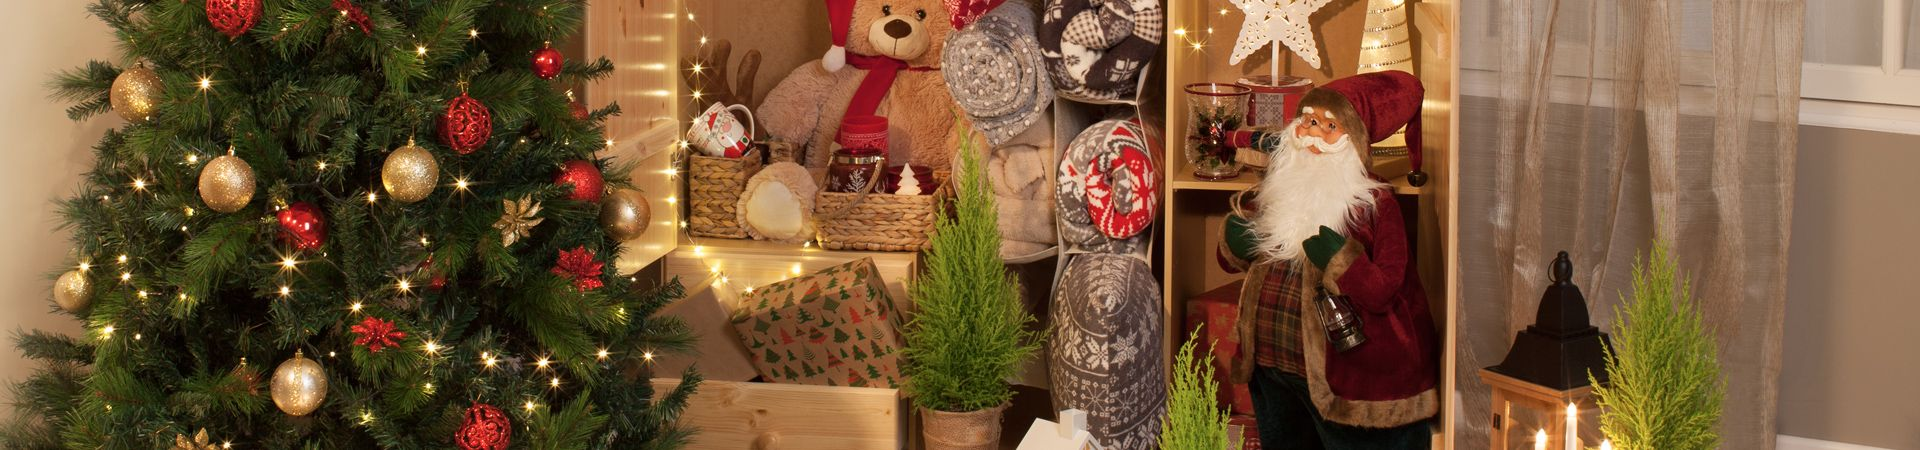 CHRISTMAS_TREES_AND_DECORATIONS